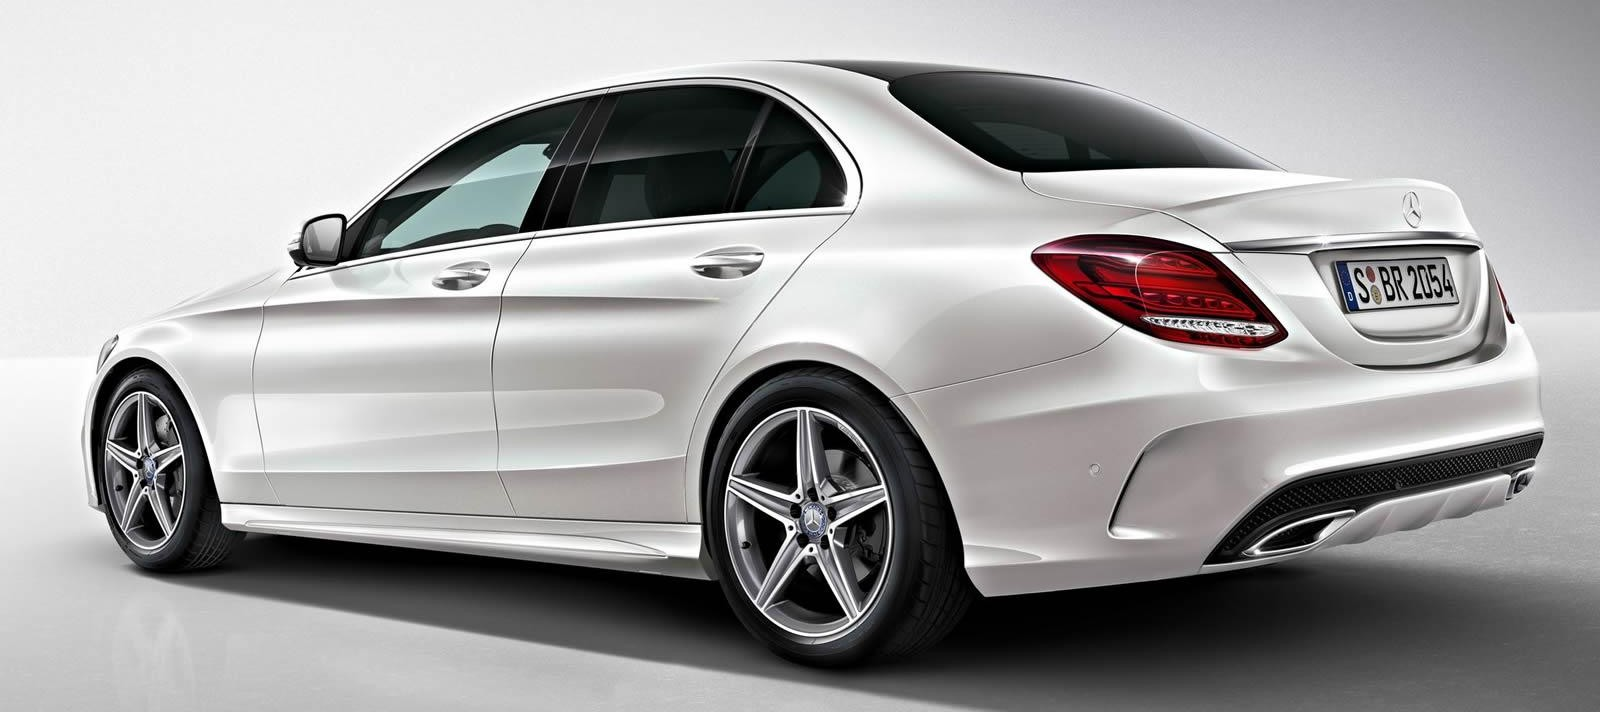 Mercedes Benz C Class 2019 Exterior Rear Side View